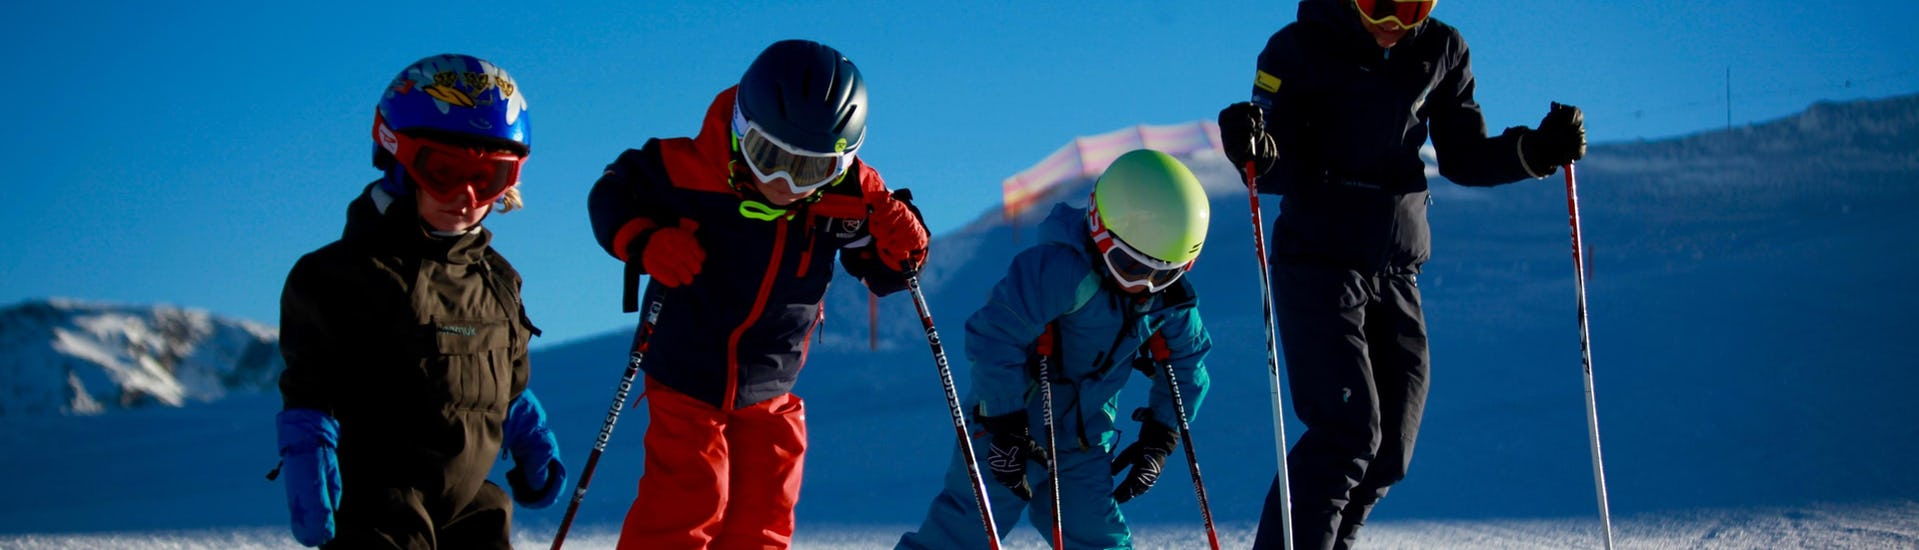 Ski Instructor Private for Kids - Afternoon - All Ages